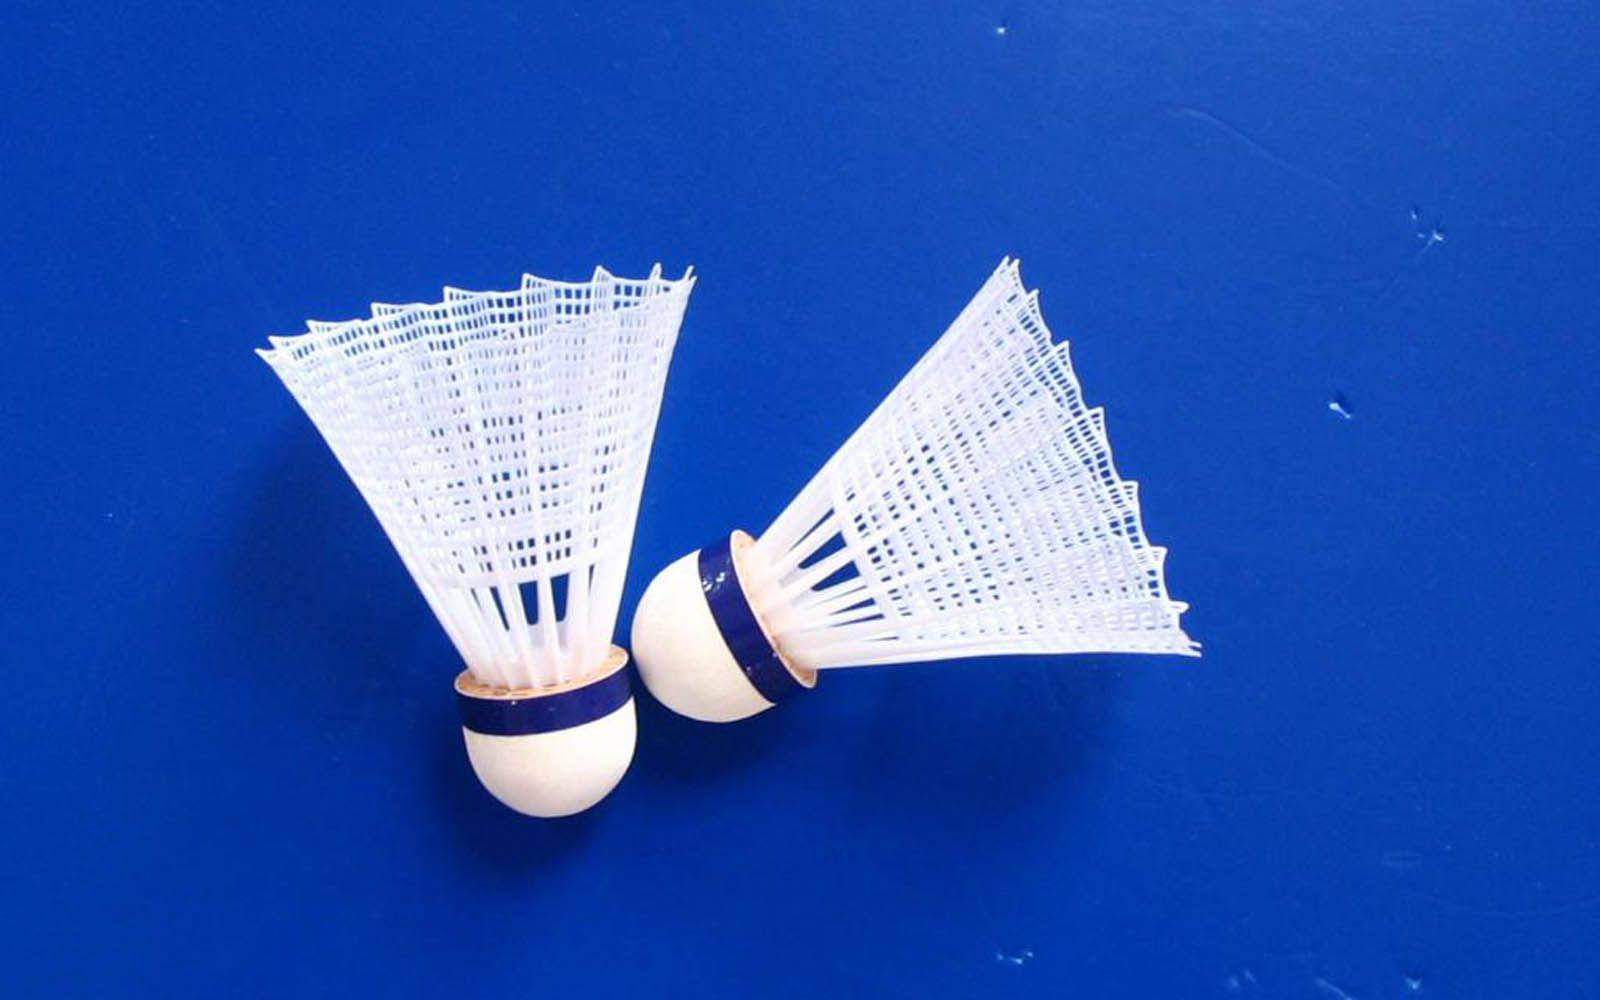 badminton Computer Wallpapers, Desktop Backgrounds | 1600x1000 ...